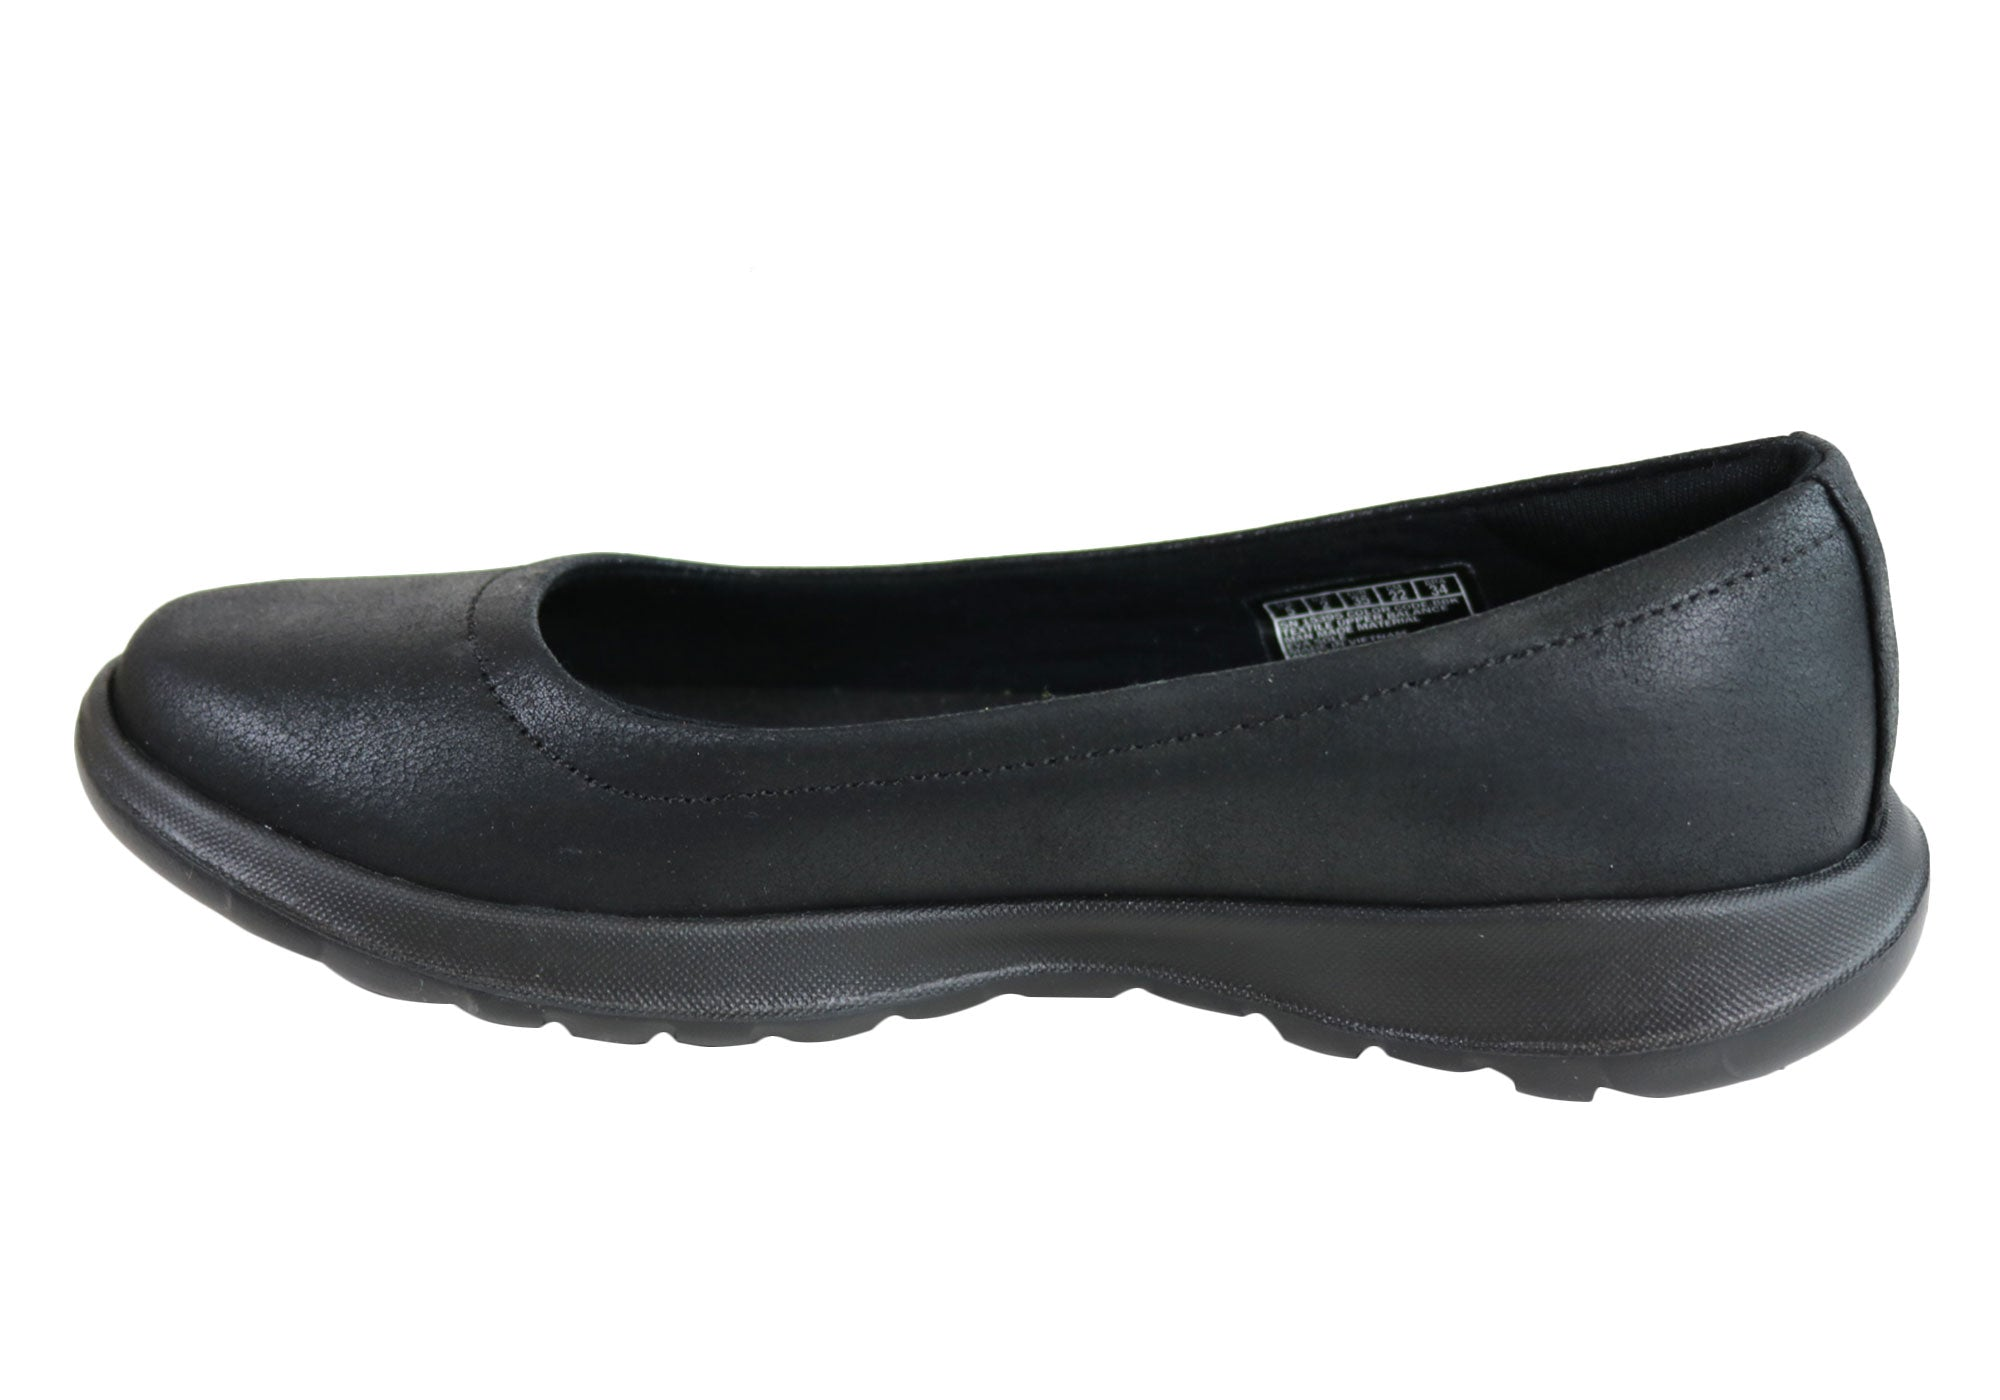 81c7afaed4f Home Skechers Womens Go Walk Lite Gem Comfort Cushioned Ballet Flat Shoes.  Black · Black · Black · Black ...